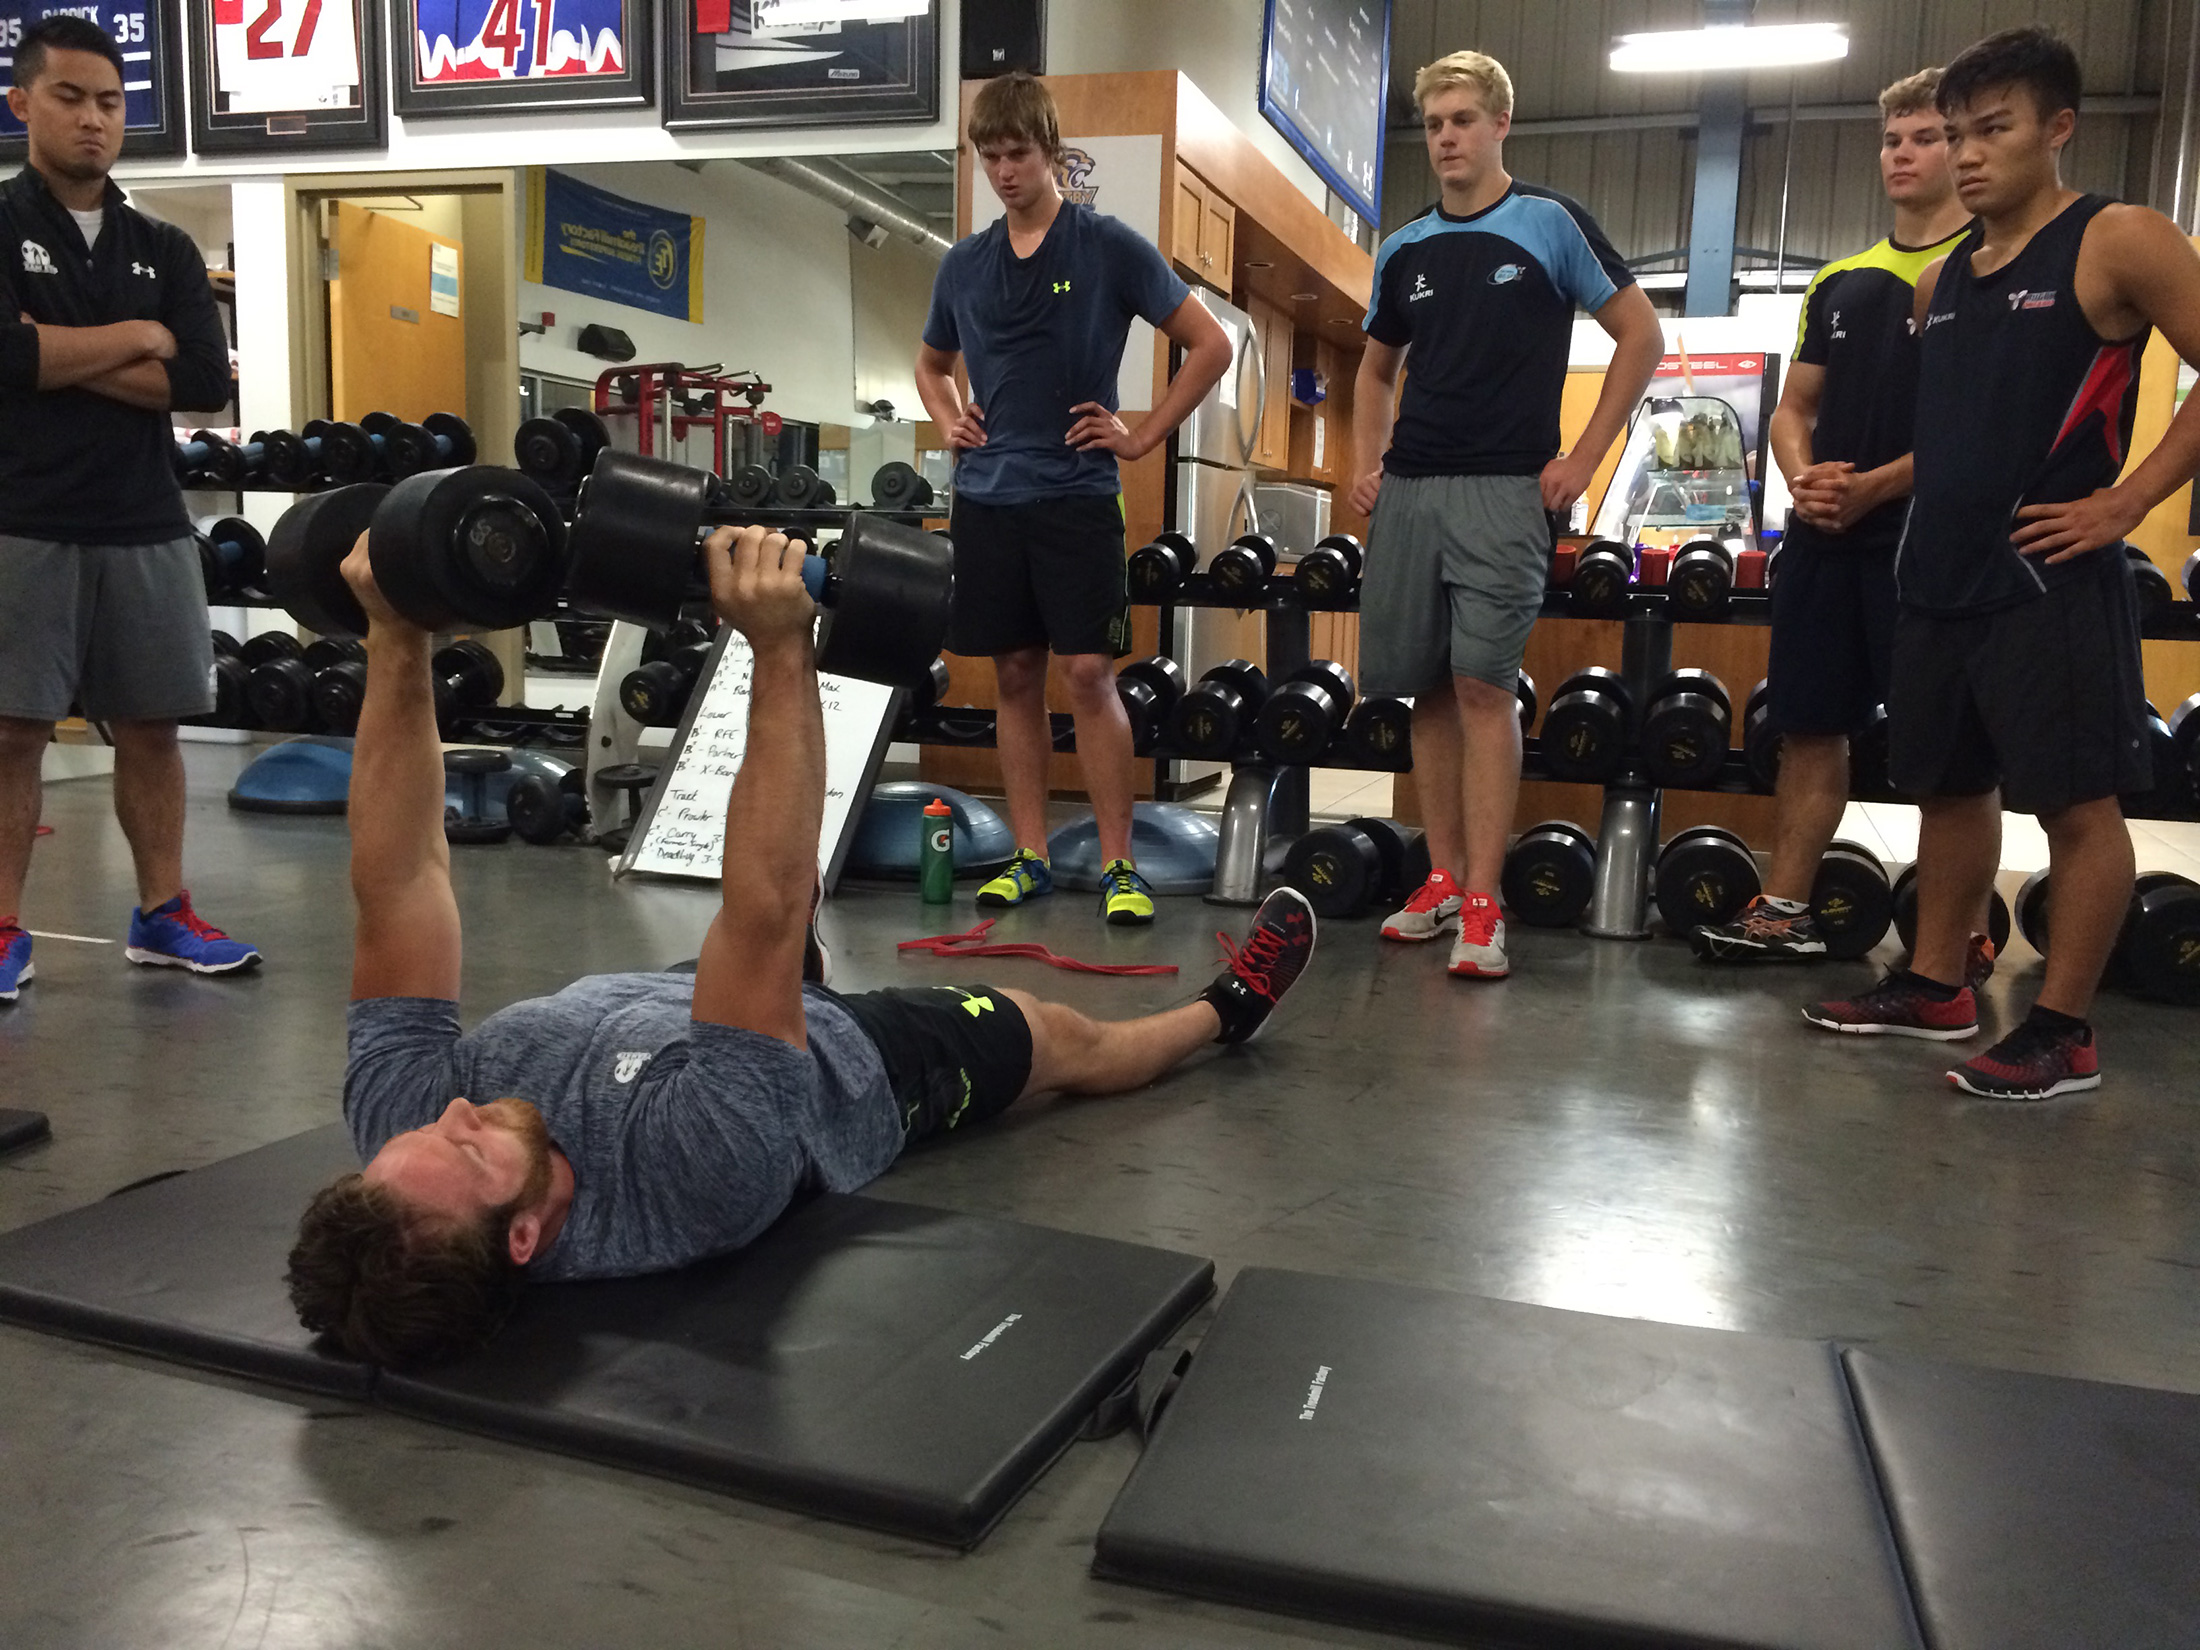 Performance---Team-Training---Rugby-Ontario---Demo-Db-Floor-Press-Harrison